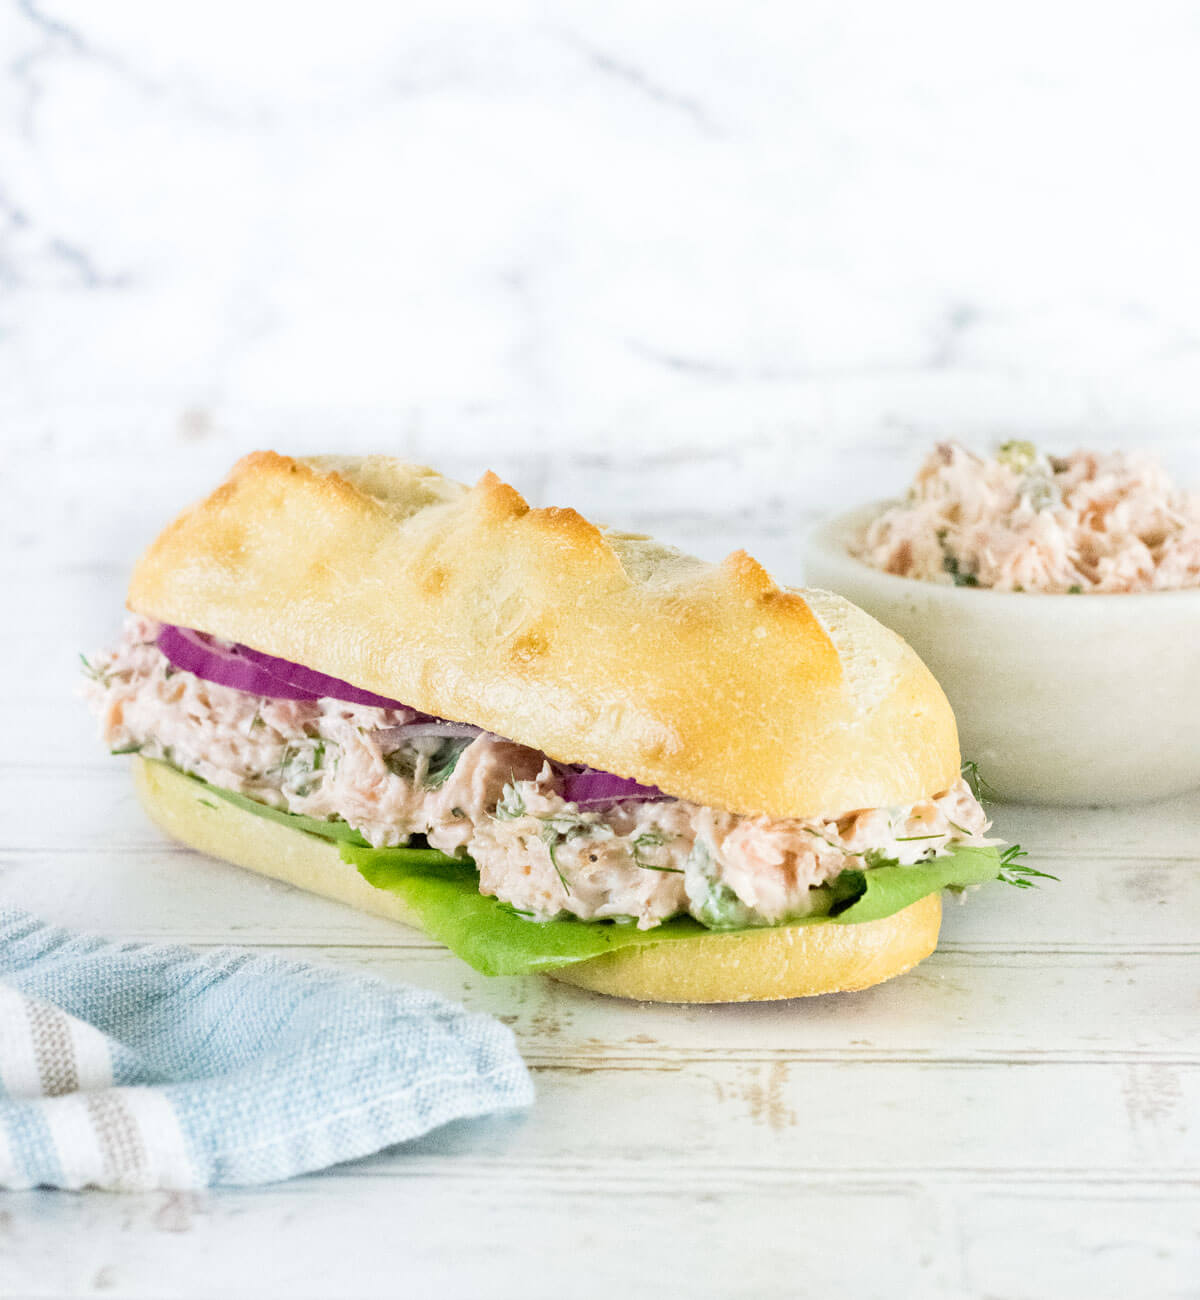 Salmon Salad Sandwich on hoagie roll with lettuce.